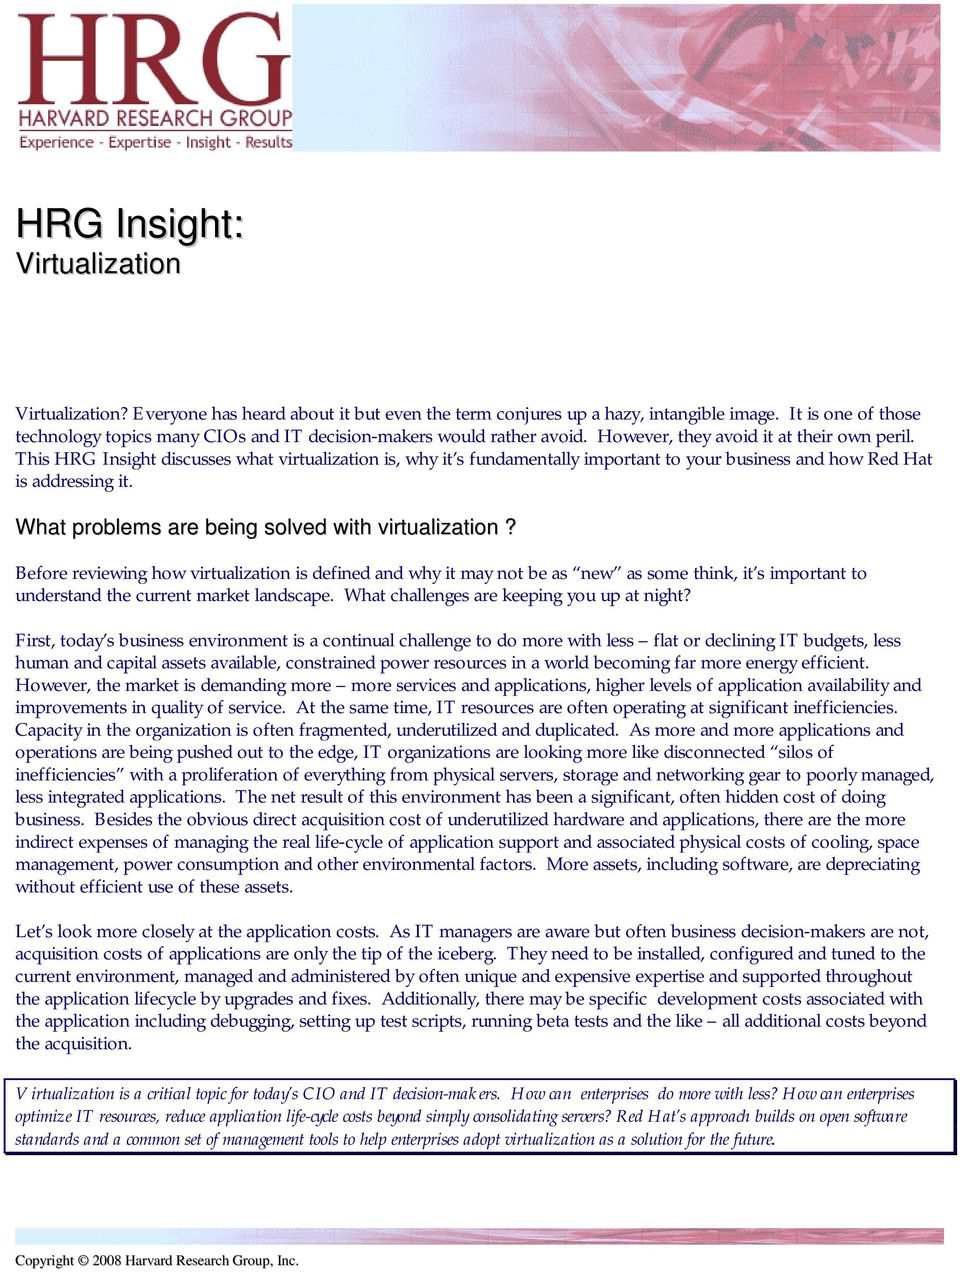 This HRG Insight discusses what virtualization is, why it s fundamentally important to your business and how Red Hat is addressing it. What problems are being solved with virtualization?